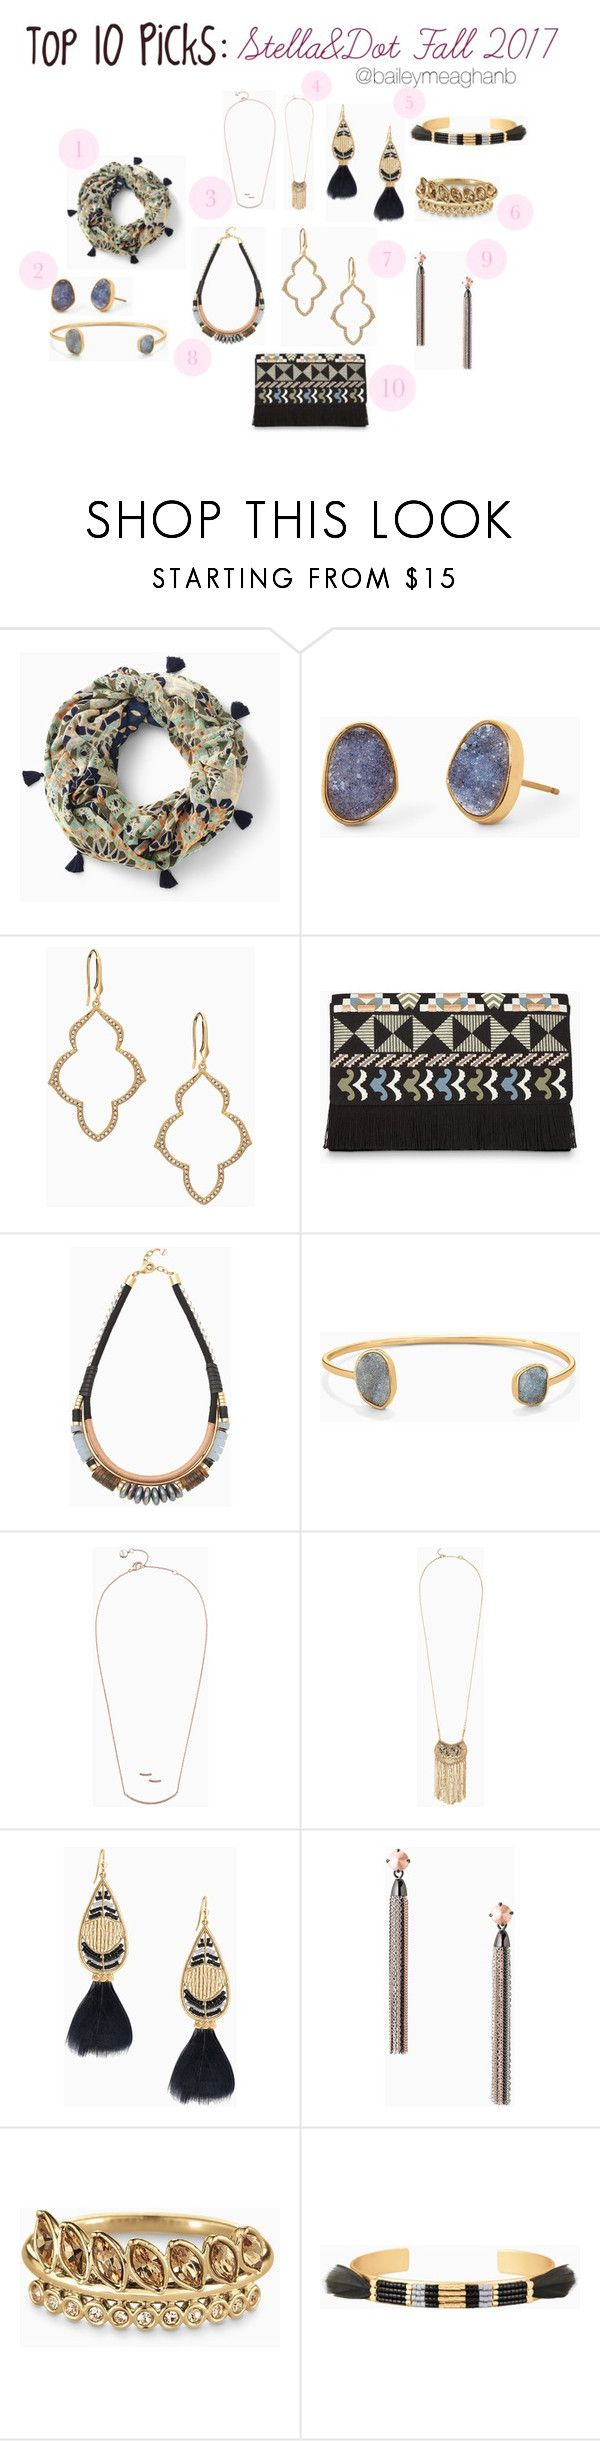 """""""Top 10 Picks: Stella&Dot Fall 2017 Collection"""" by baileymeaghanb on Polyvore featuring Stella & Dot, ootd, stelladotstyle, fallstyle and fall2017"""